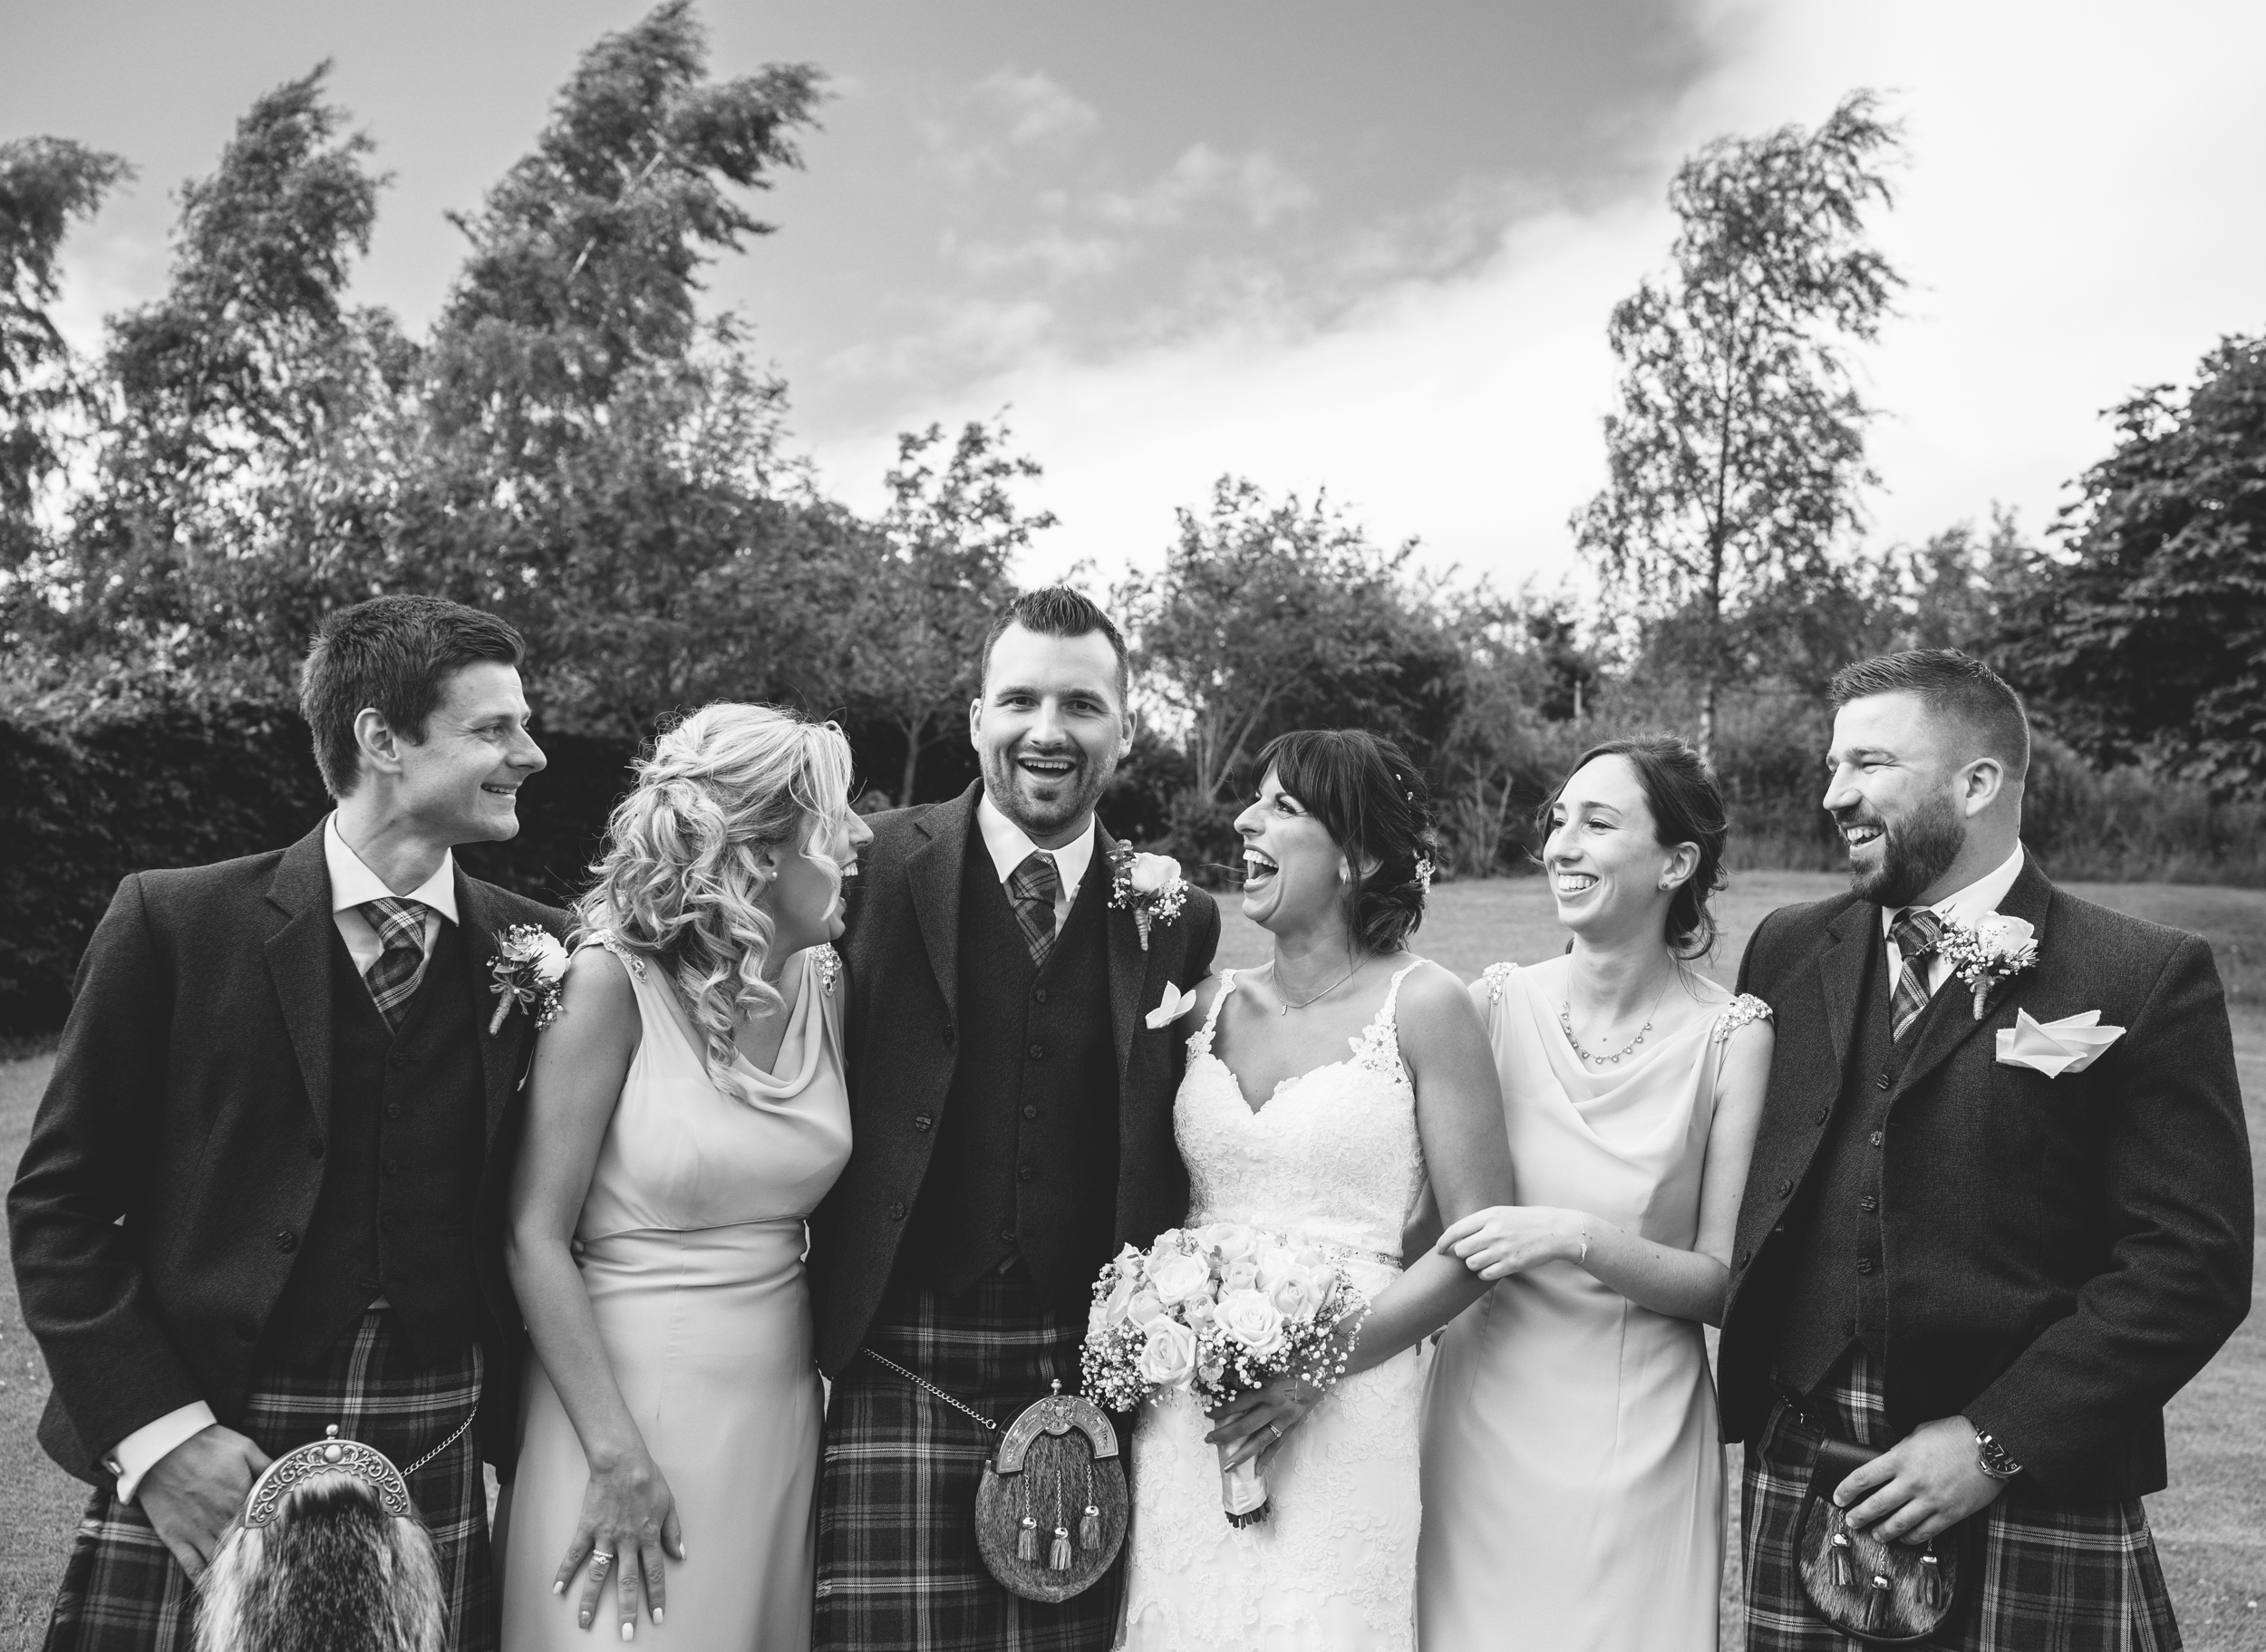 wedding photographers in aberdeen, wedding photography aberdeen, Scottish wedding photographer, we fell in love blog,